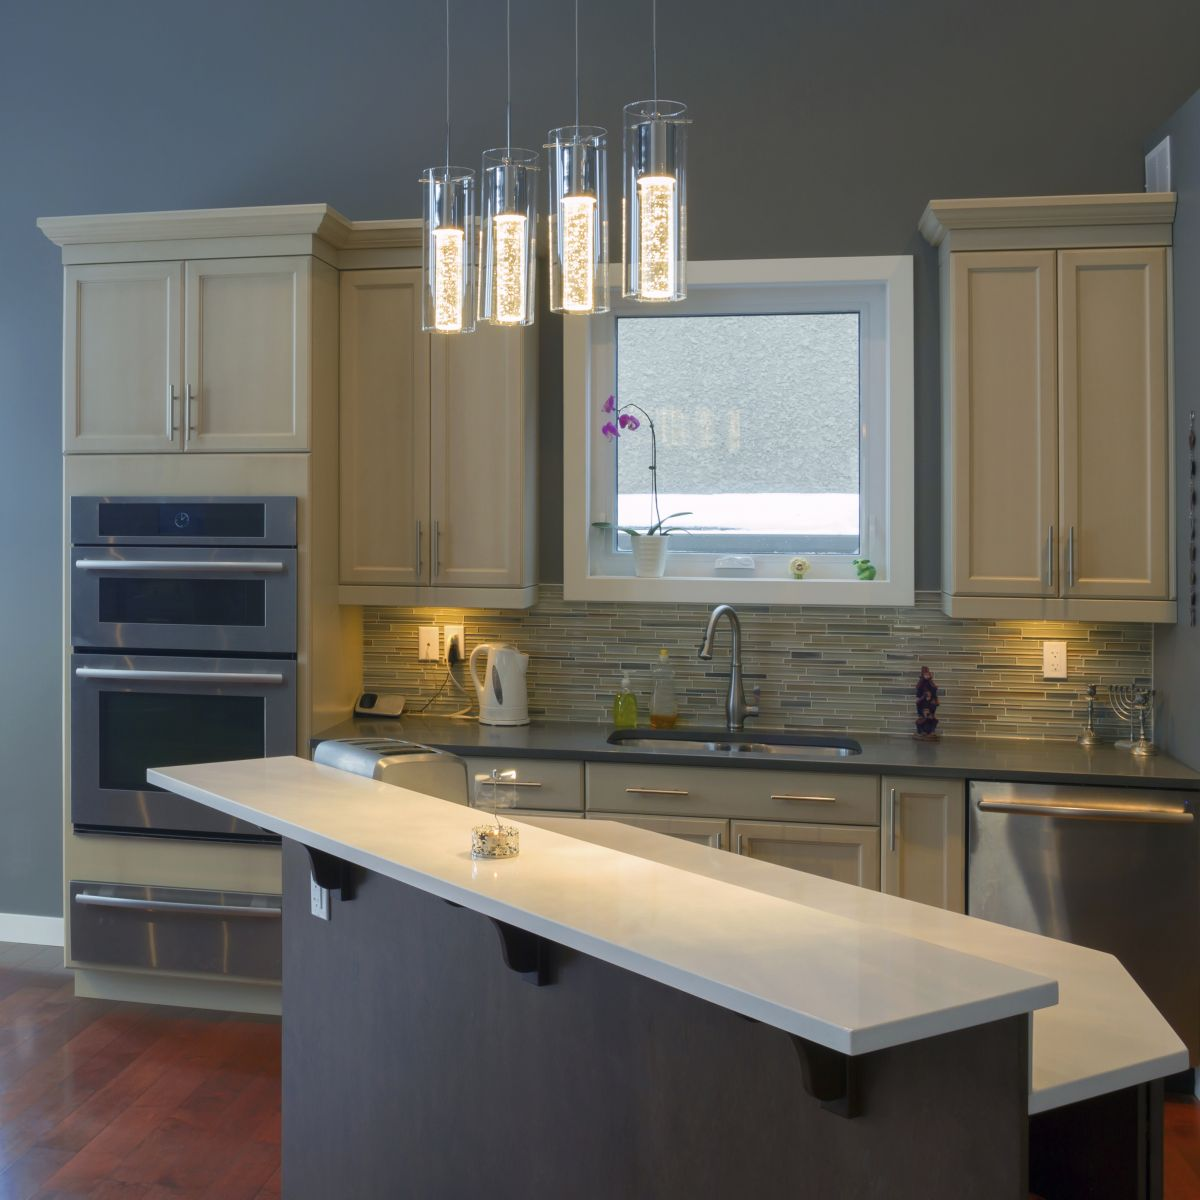 Kitchen Cabinets Refacing Costs Average: How Much Does Kitchen Cabinet Refacing Cost?